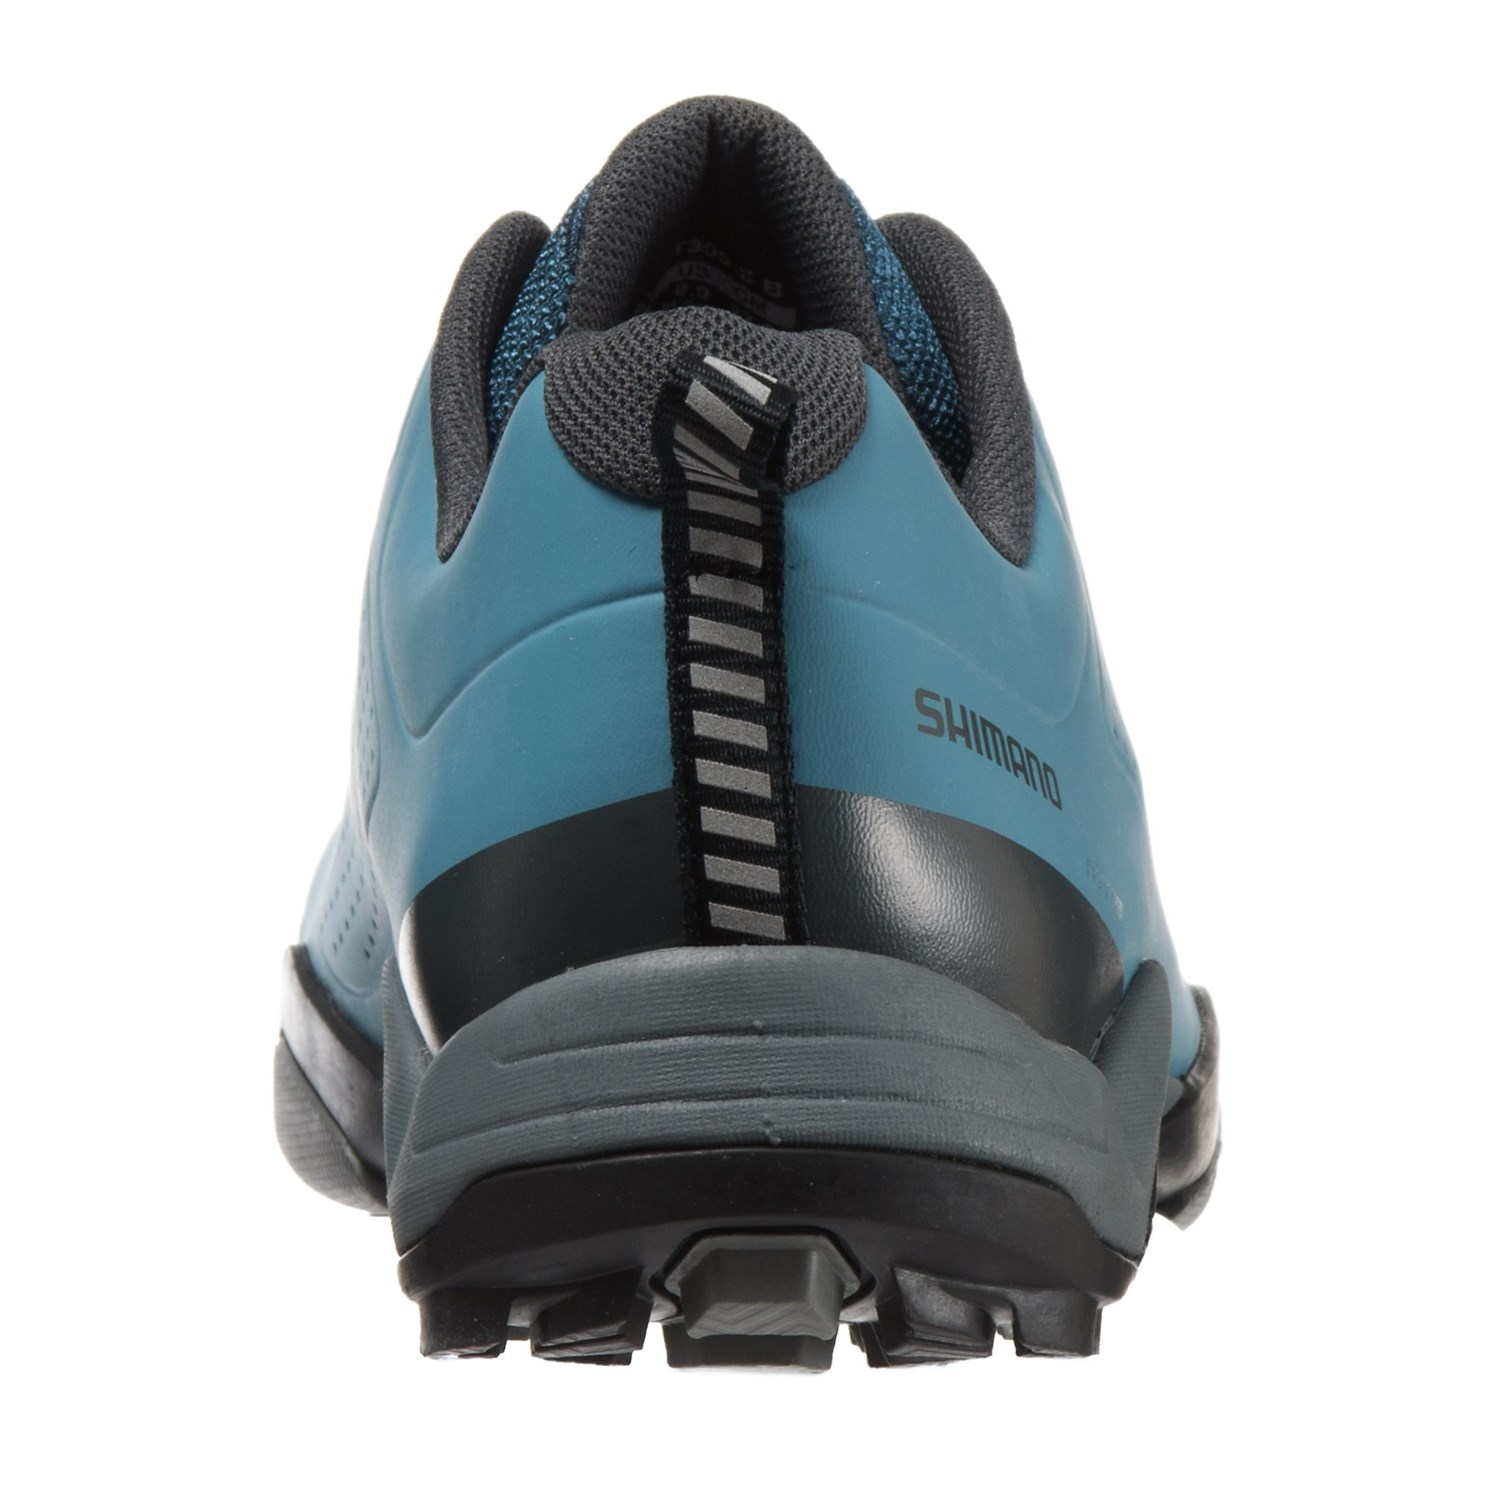 464f6623a0c Shimano SH-MT3 Cycling Shoes (For Men) - Save 40%